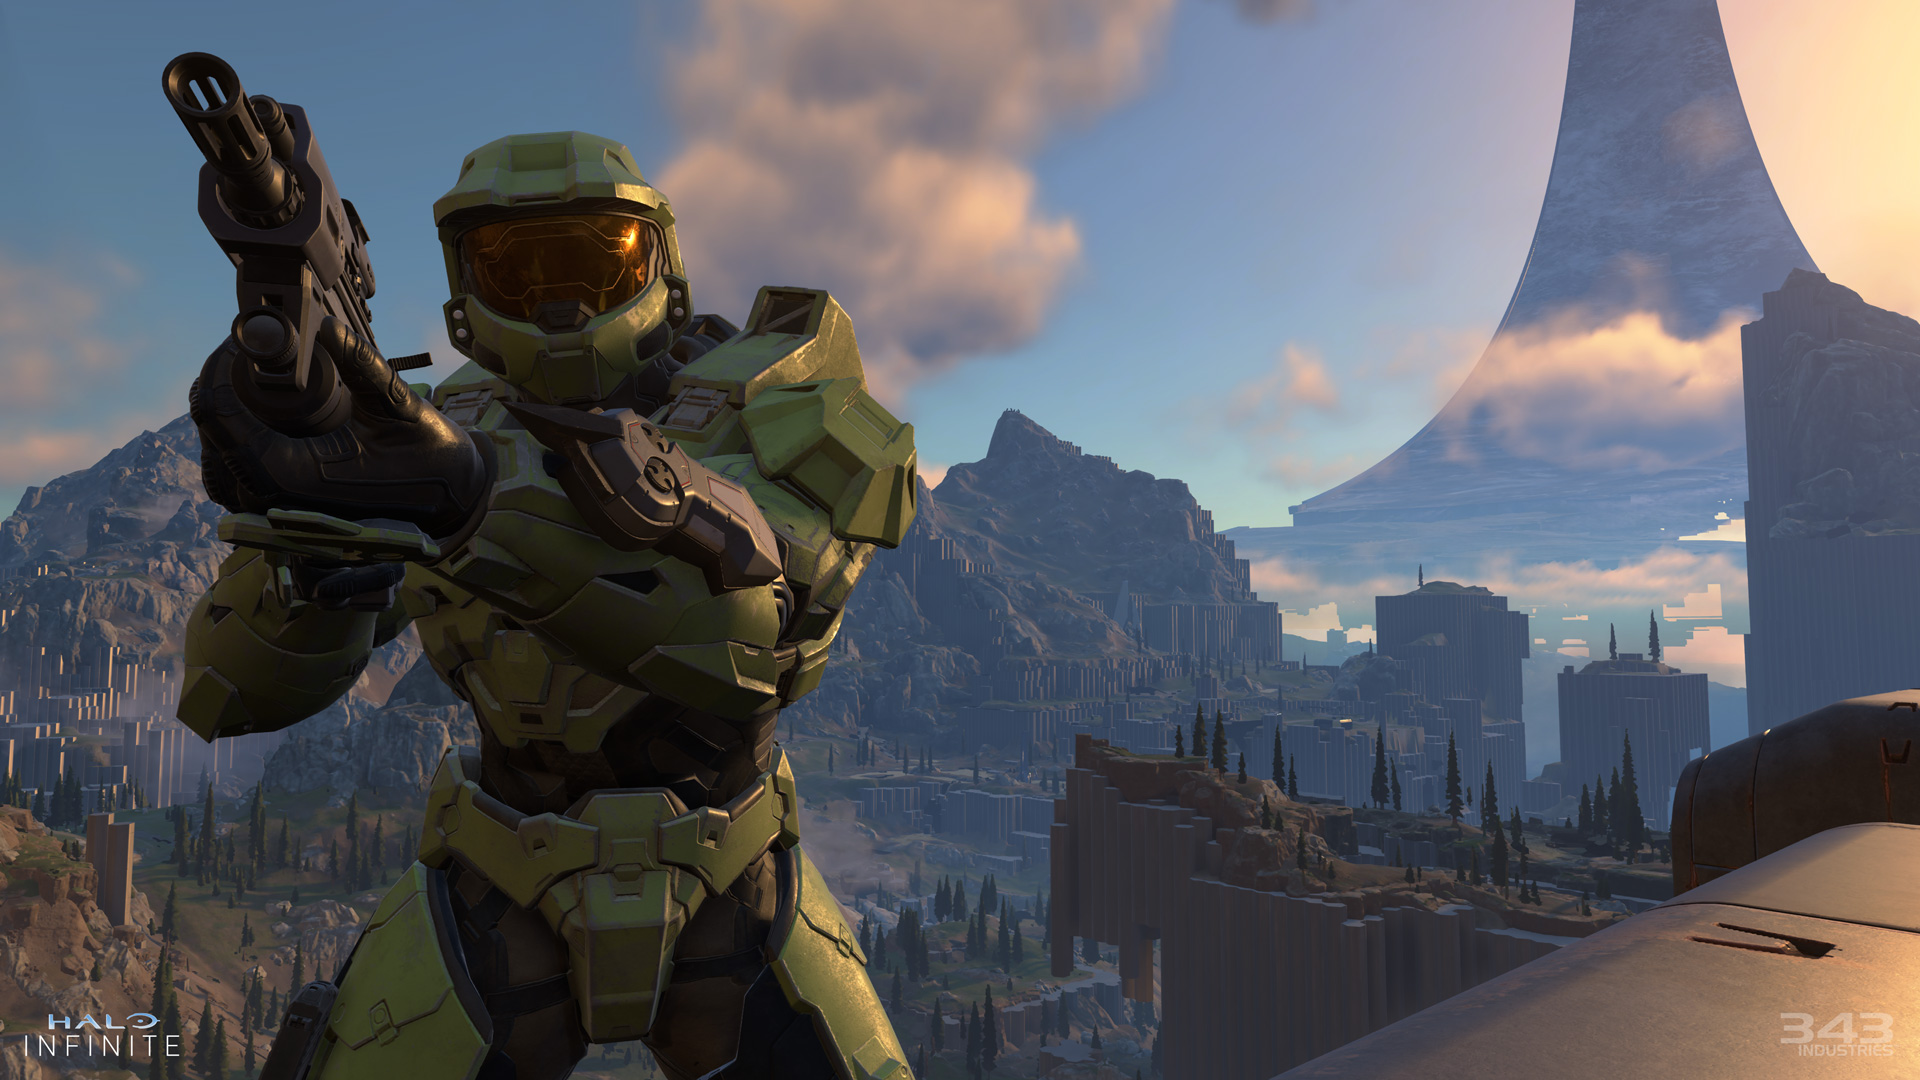 Halo Infinite | Games | Halo - Official Site